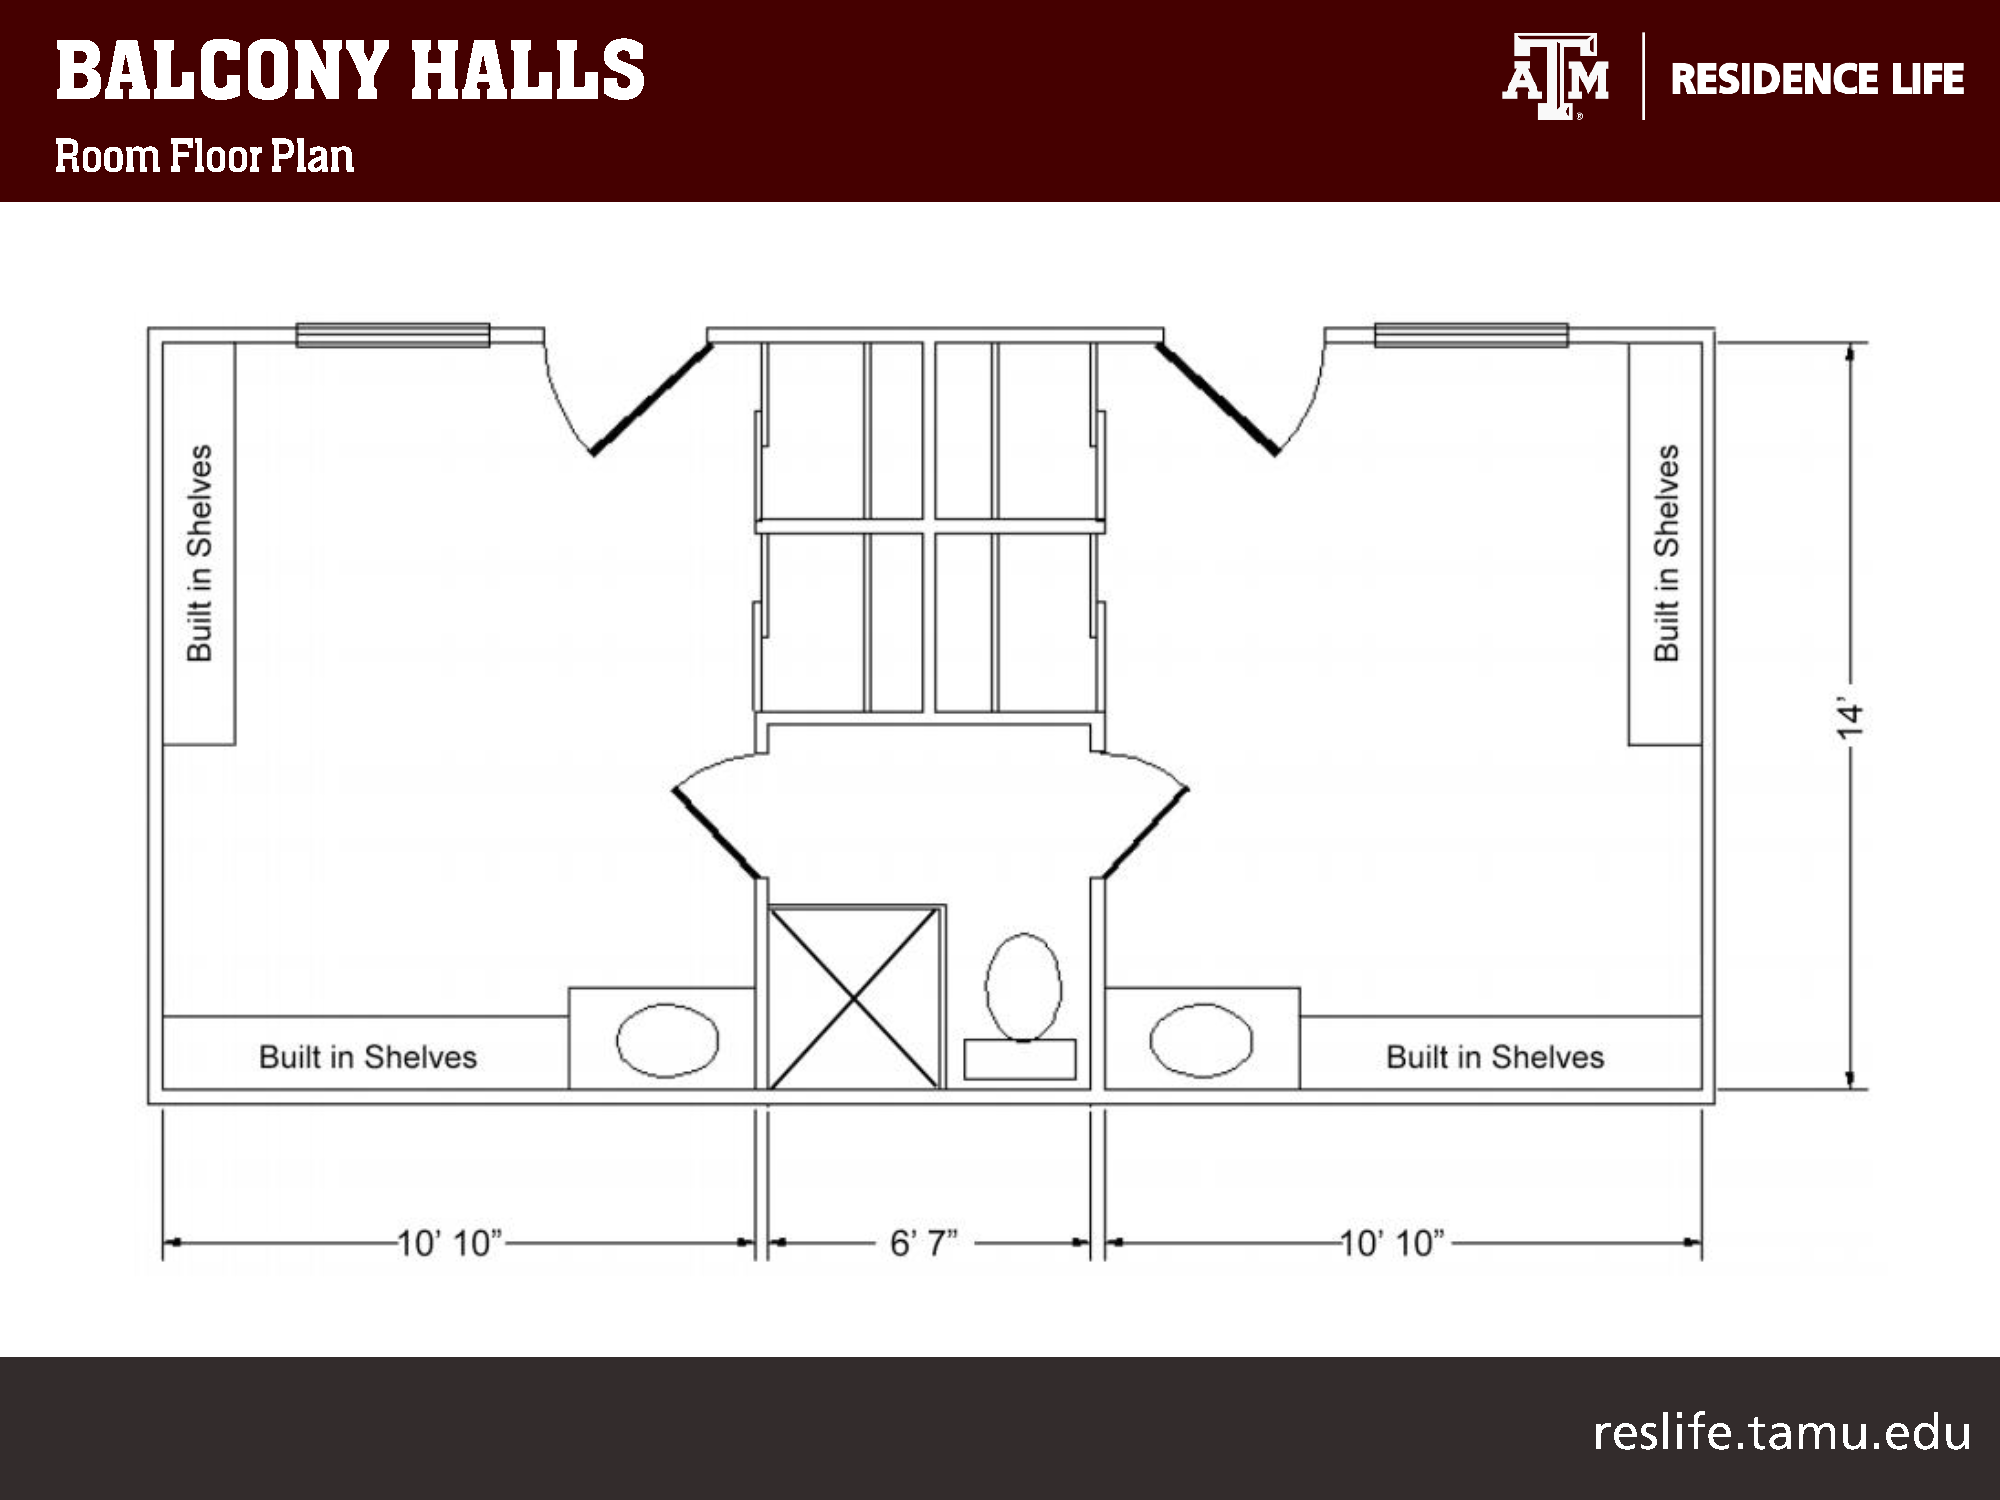 """Bird's-eye view of 2-D floor plan: shows a single room with dimensions of 14'' x 10' 10"""". A 6' 7"""" wide bathroom is depicted, along with a double room with the dimensions of 14'' x 10' 10""""."""